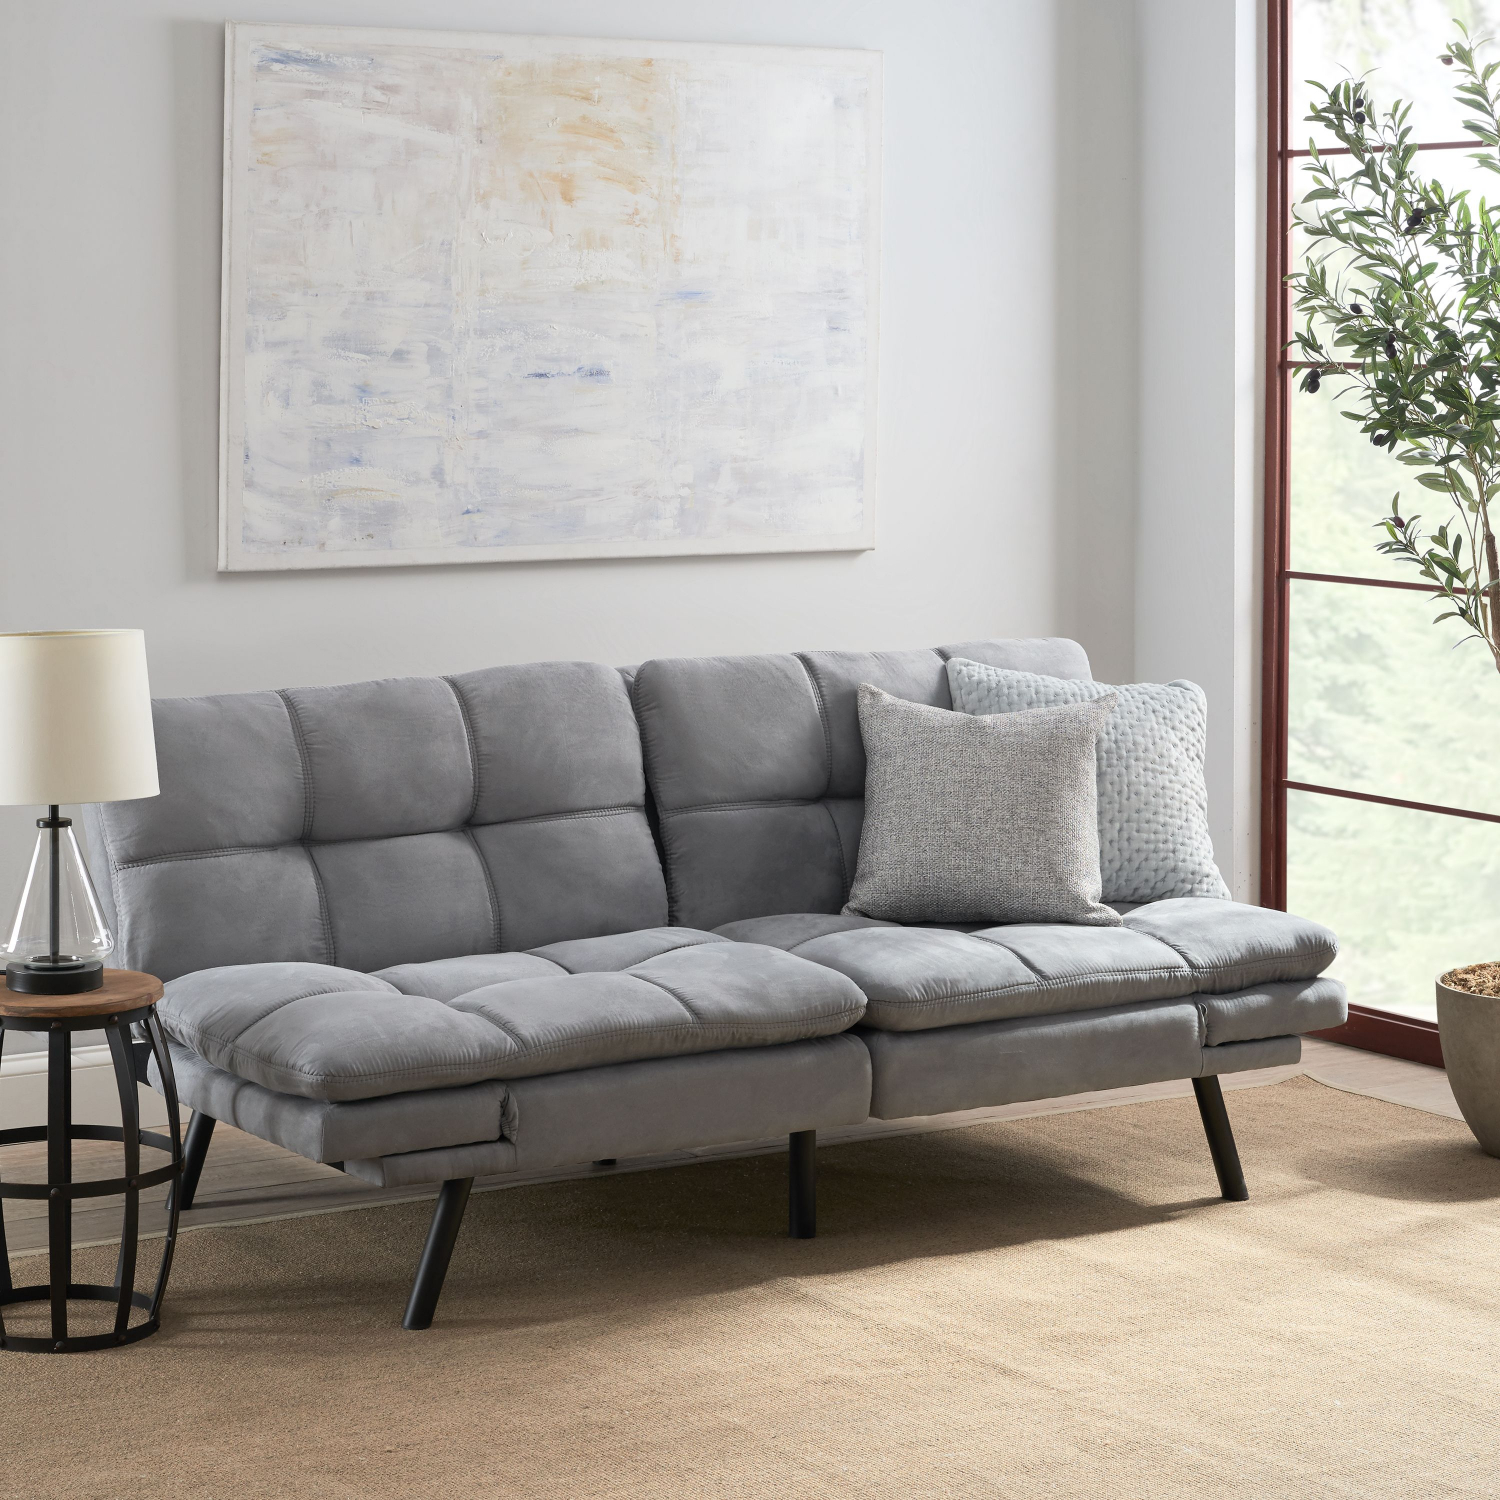 Memory Foam Futon Sofa Bed Couch Sleeper Convertible ...